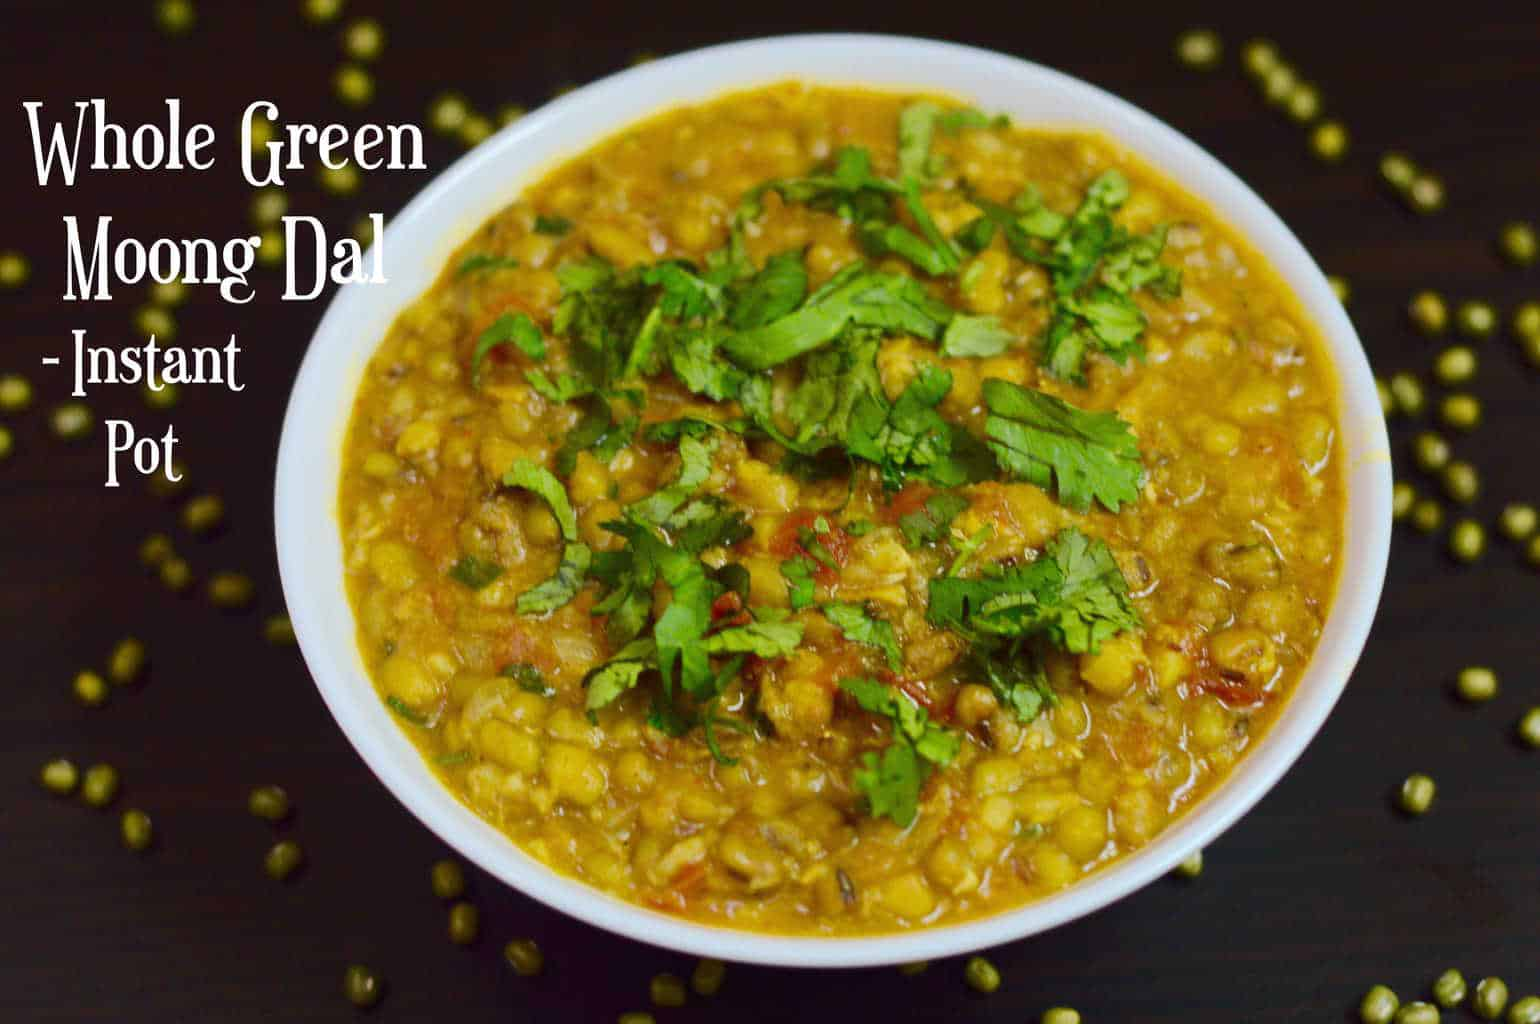 Instant Pot Whole Green Moong Dal|Green Lentils Curry|Hesarukalu Palya is a vegan Indian recipe where Mung/Moong bean dal (lentil) is cooked with spices!indianveggiedelight.com